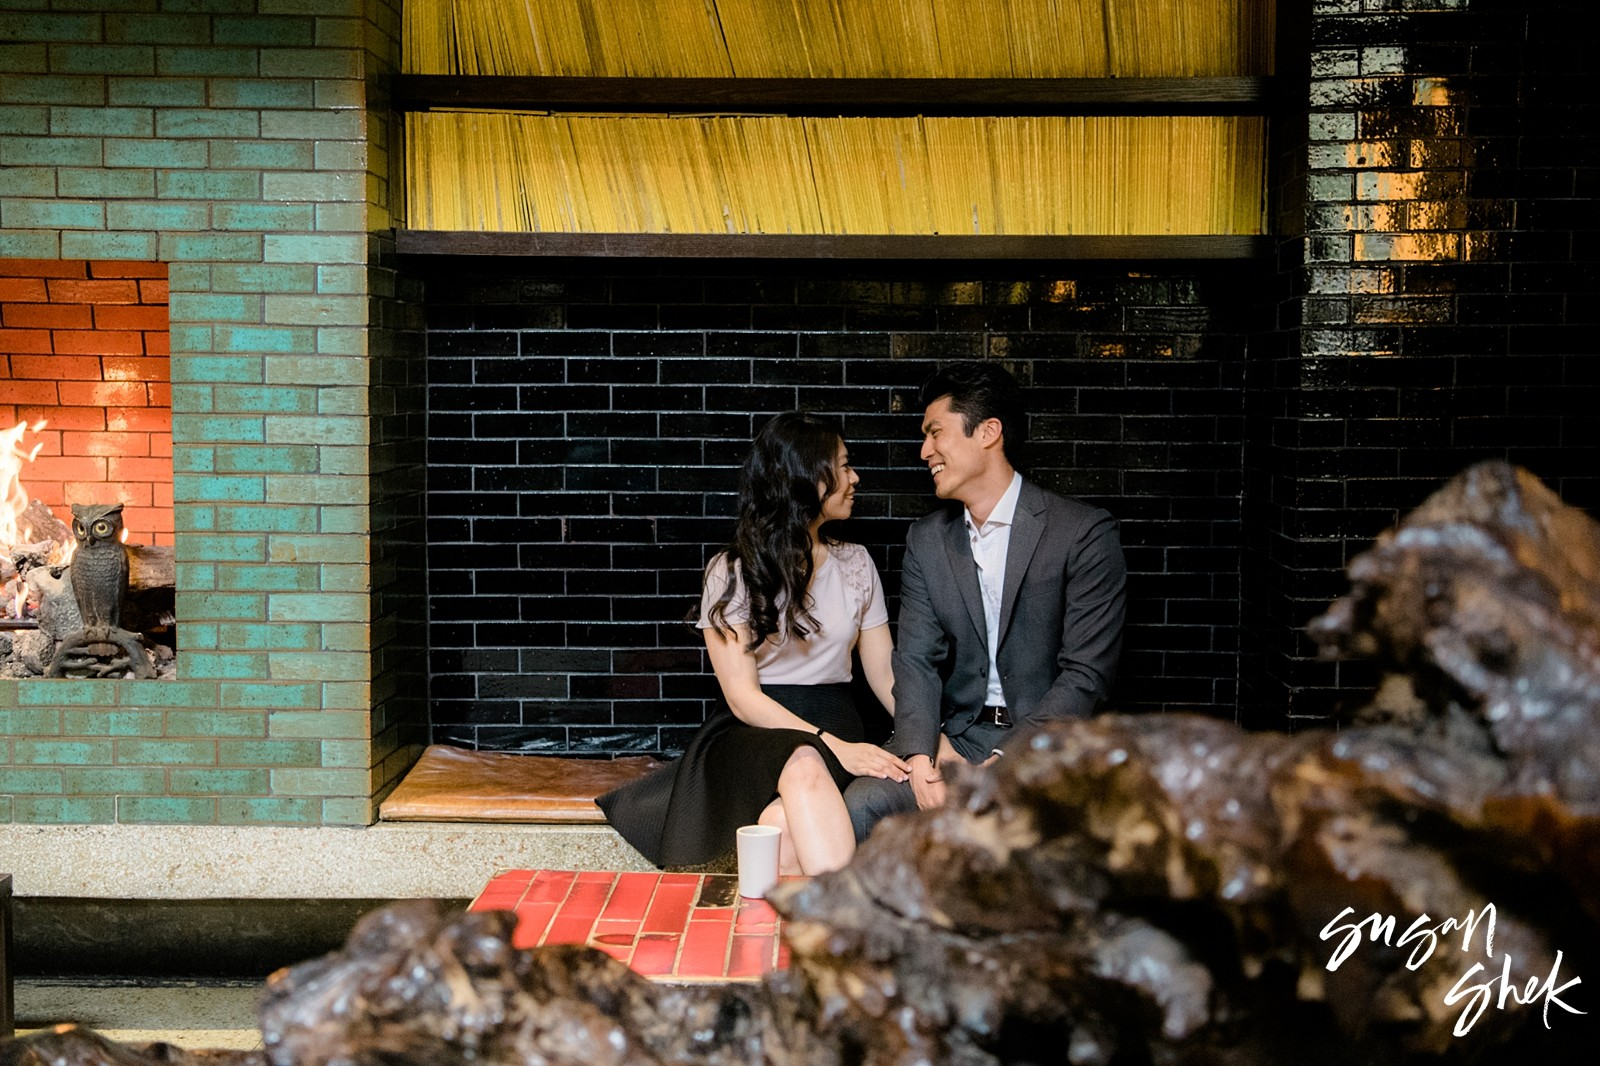 Park Restaurant Engagement, Engagement Shoot, NYC Engagement Photographer, Engagement Session, Engagement Photography, Engagement Photographer, NYC Wedding Photographer